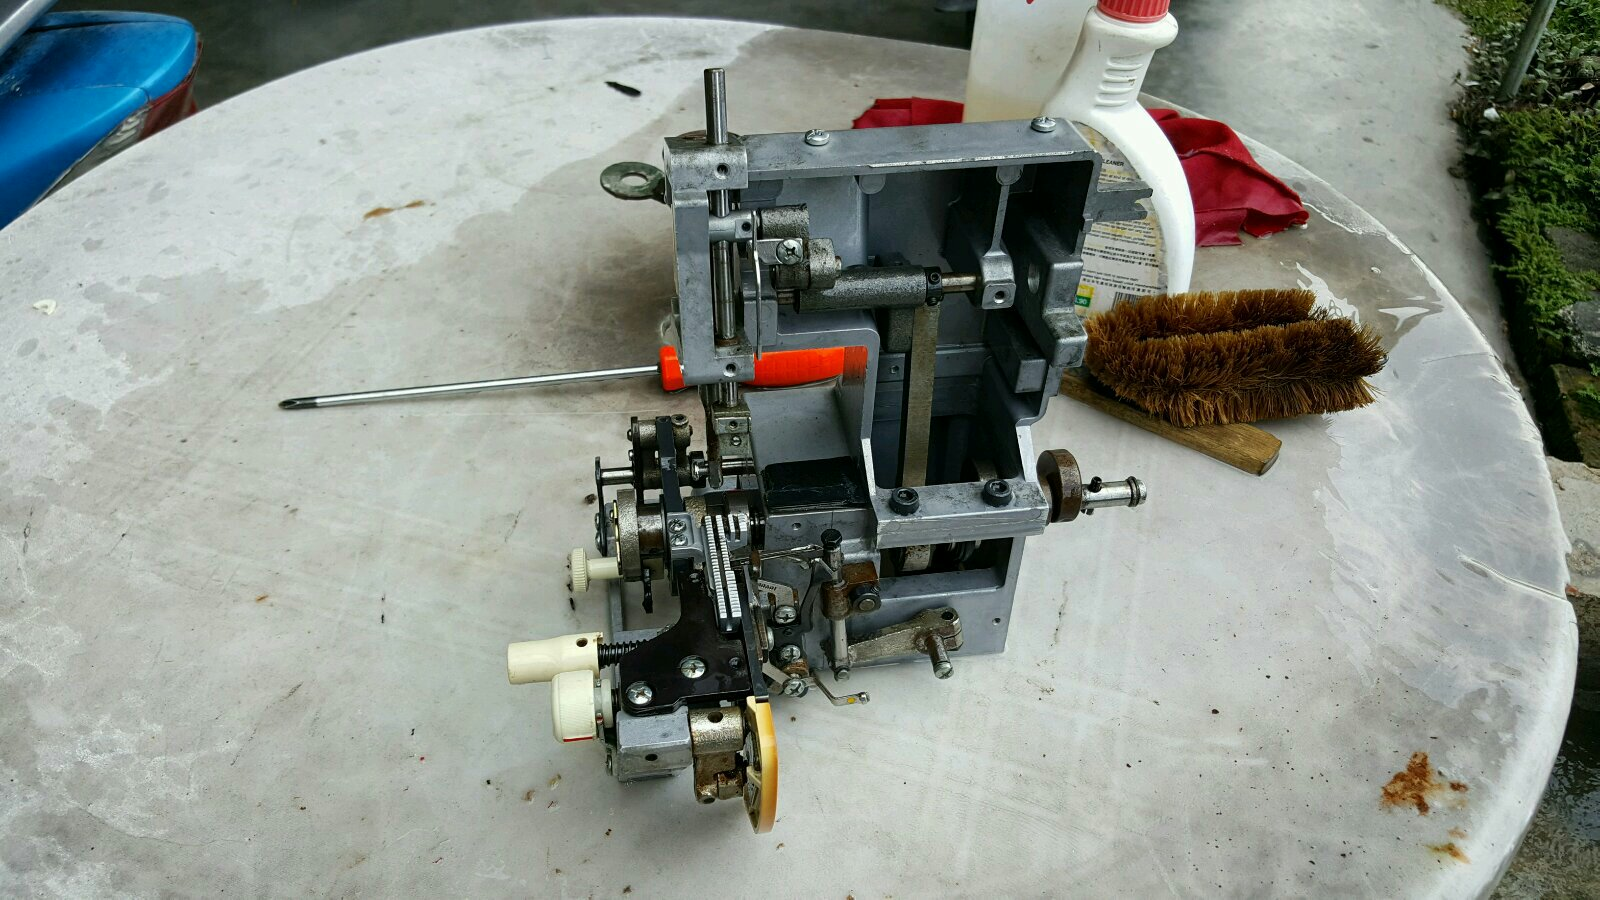 Repai Potable Overlock Sewing Machine At Tmn Rinting Pasir Gudang!!!